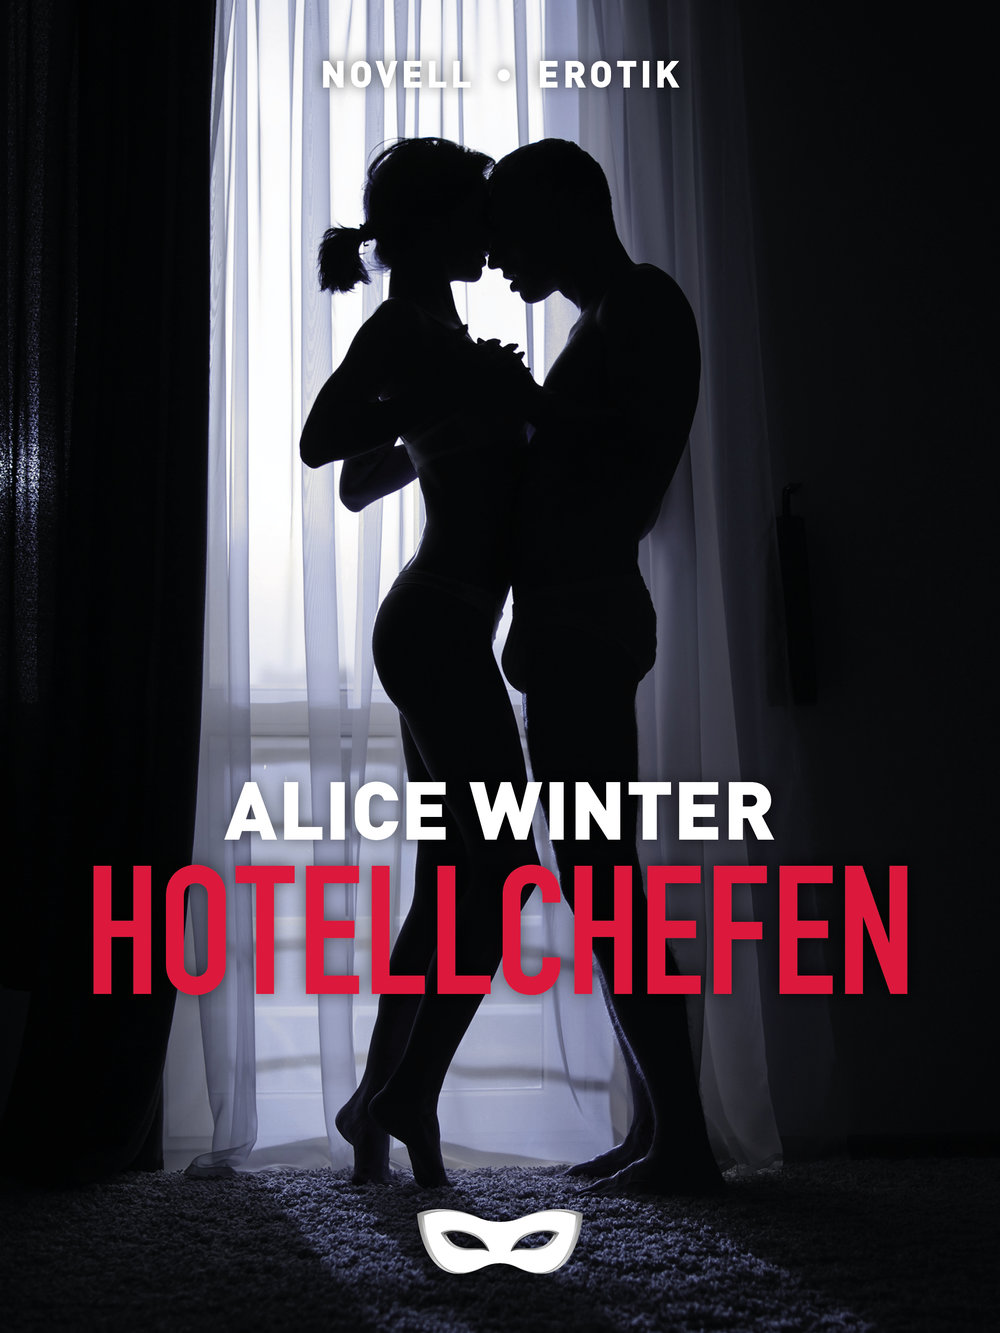 ROSALYNE4_Hotellchefen_Alice Winter.jpg